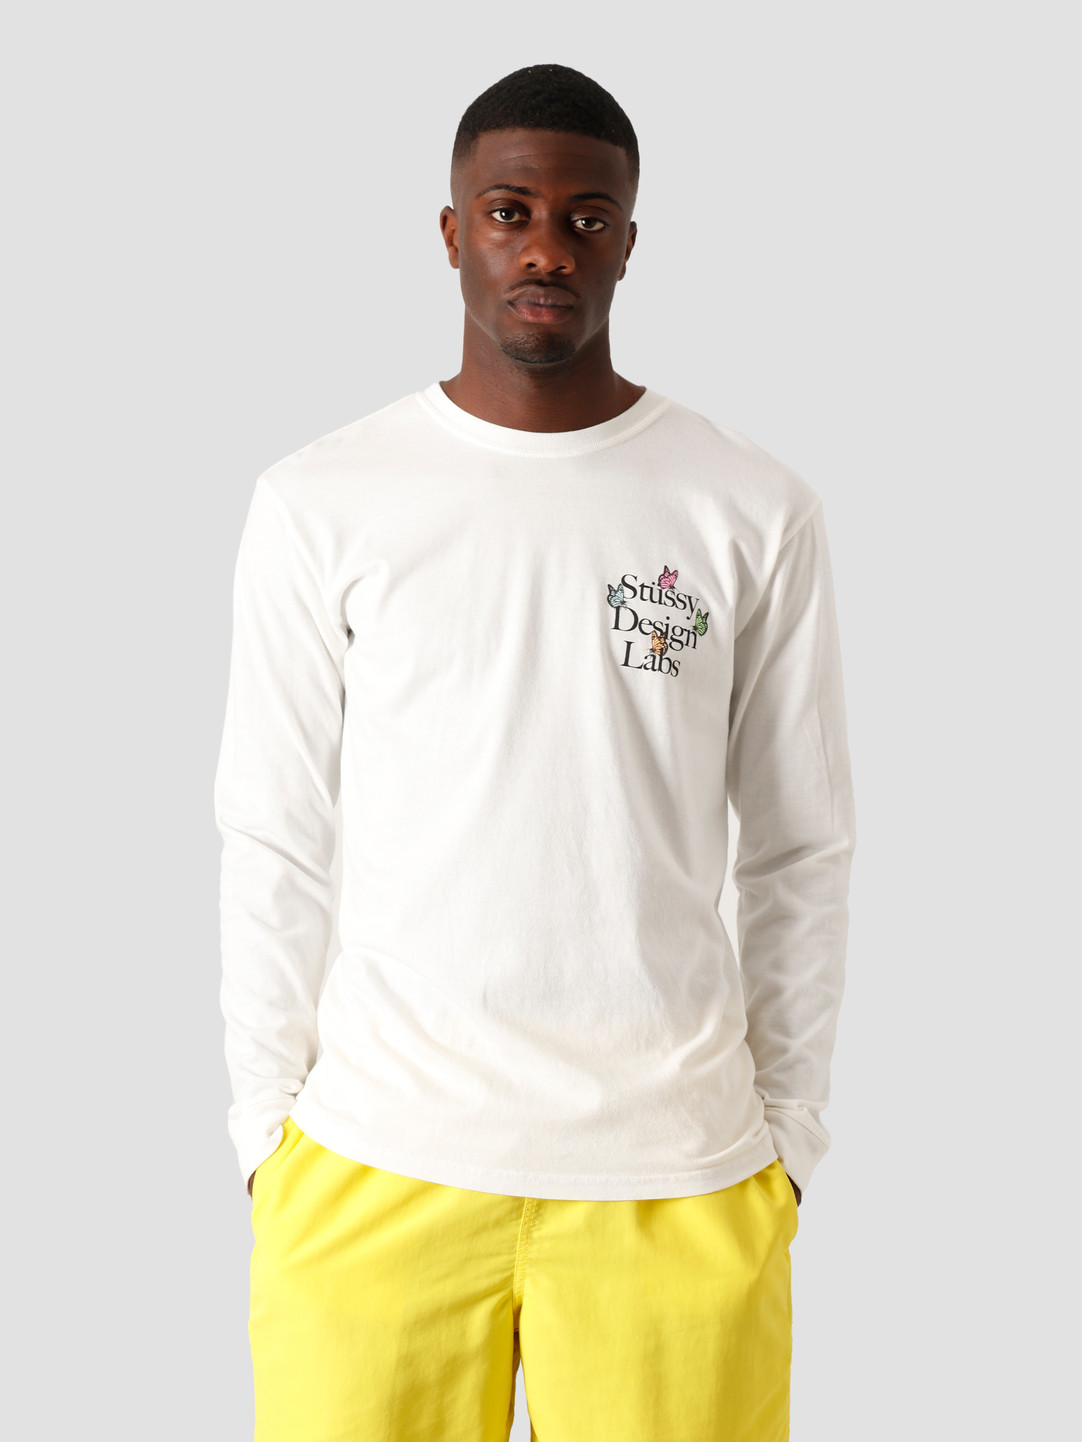 Stussy Stussy Design Labs Pigment Dyed Longsleeve T-Shirt Natural 1994562